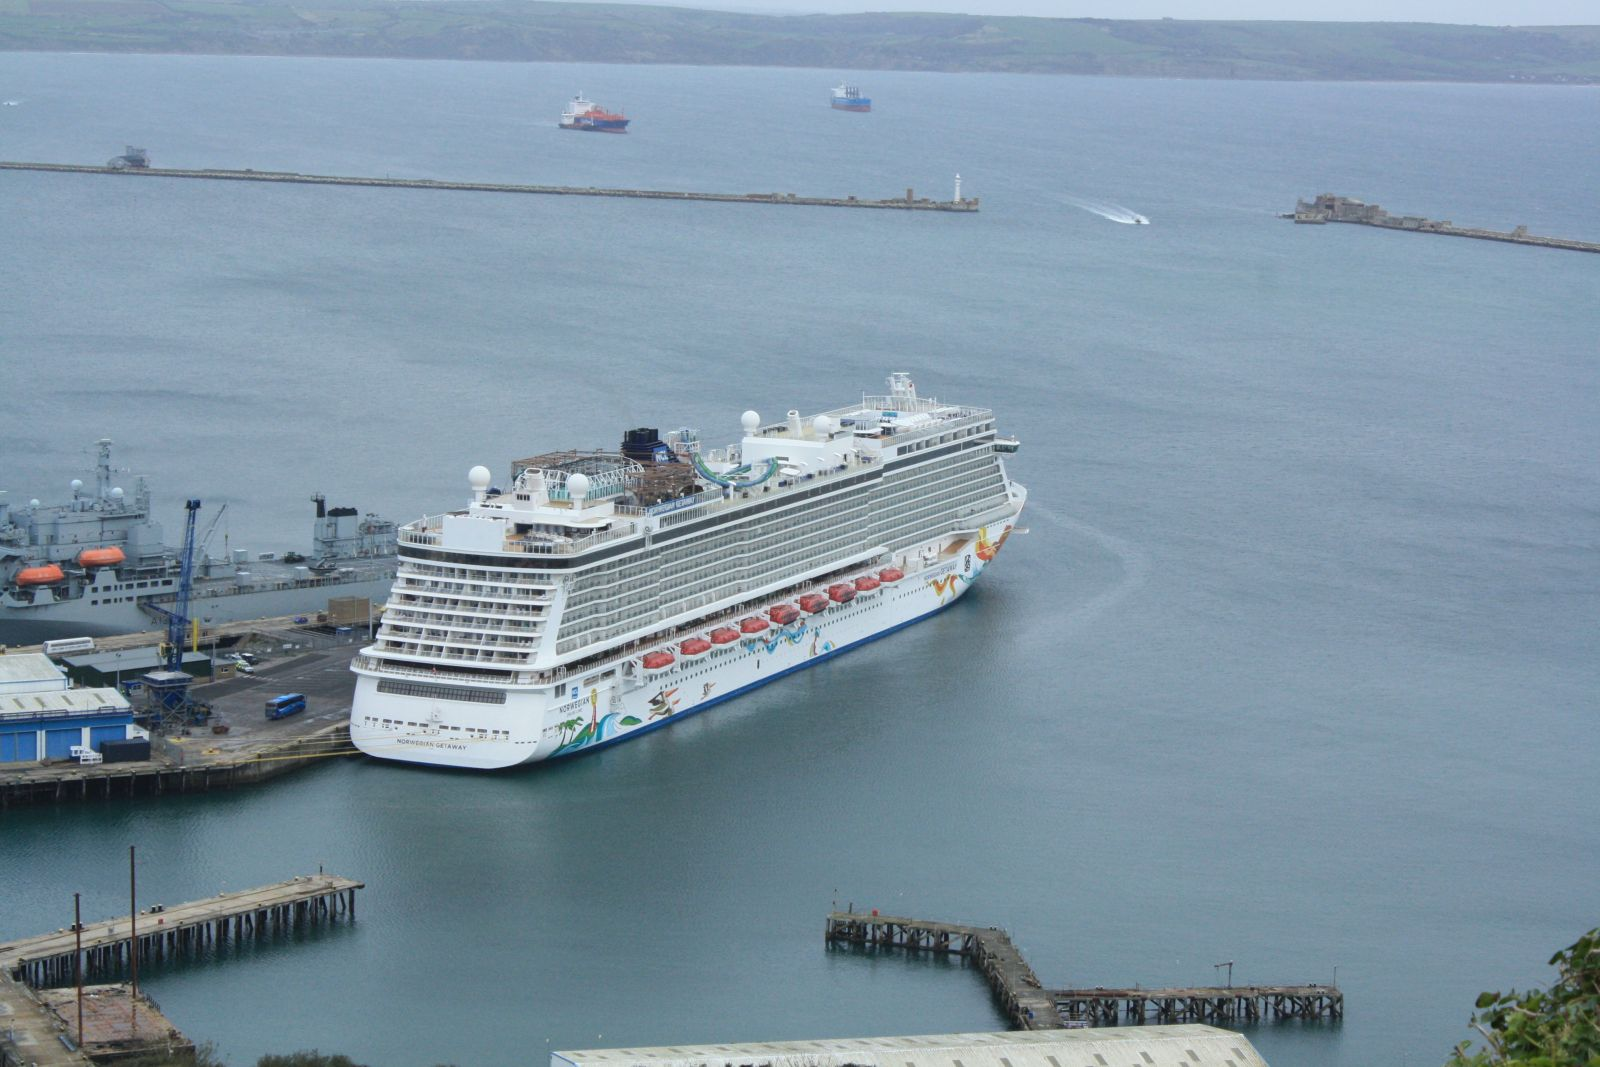 The end of the cruise season for Portland Port with a record breaking ship